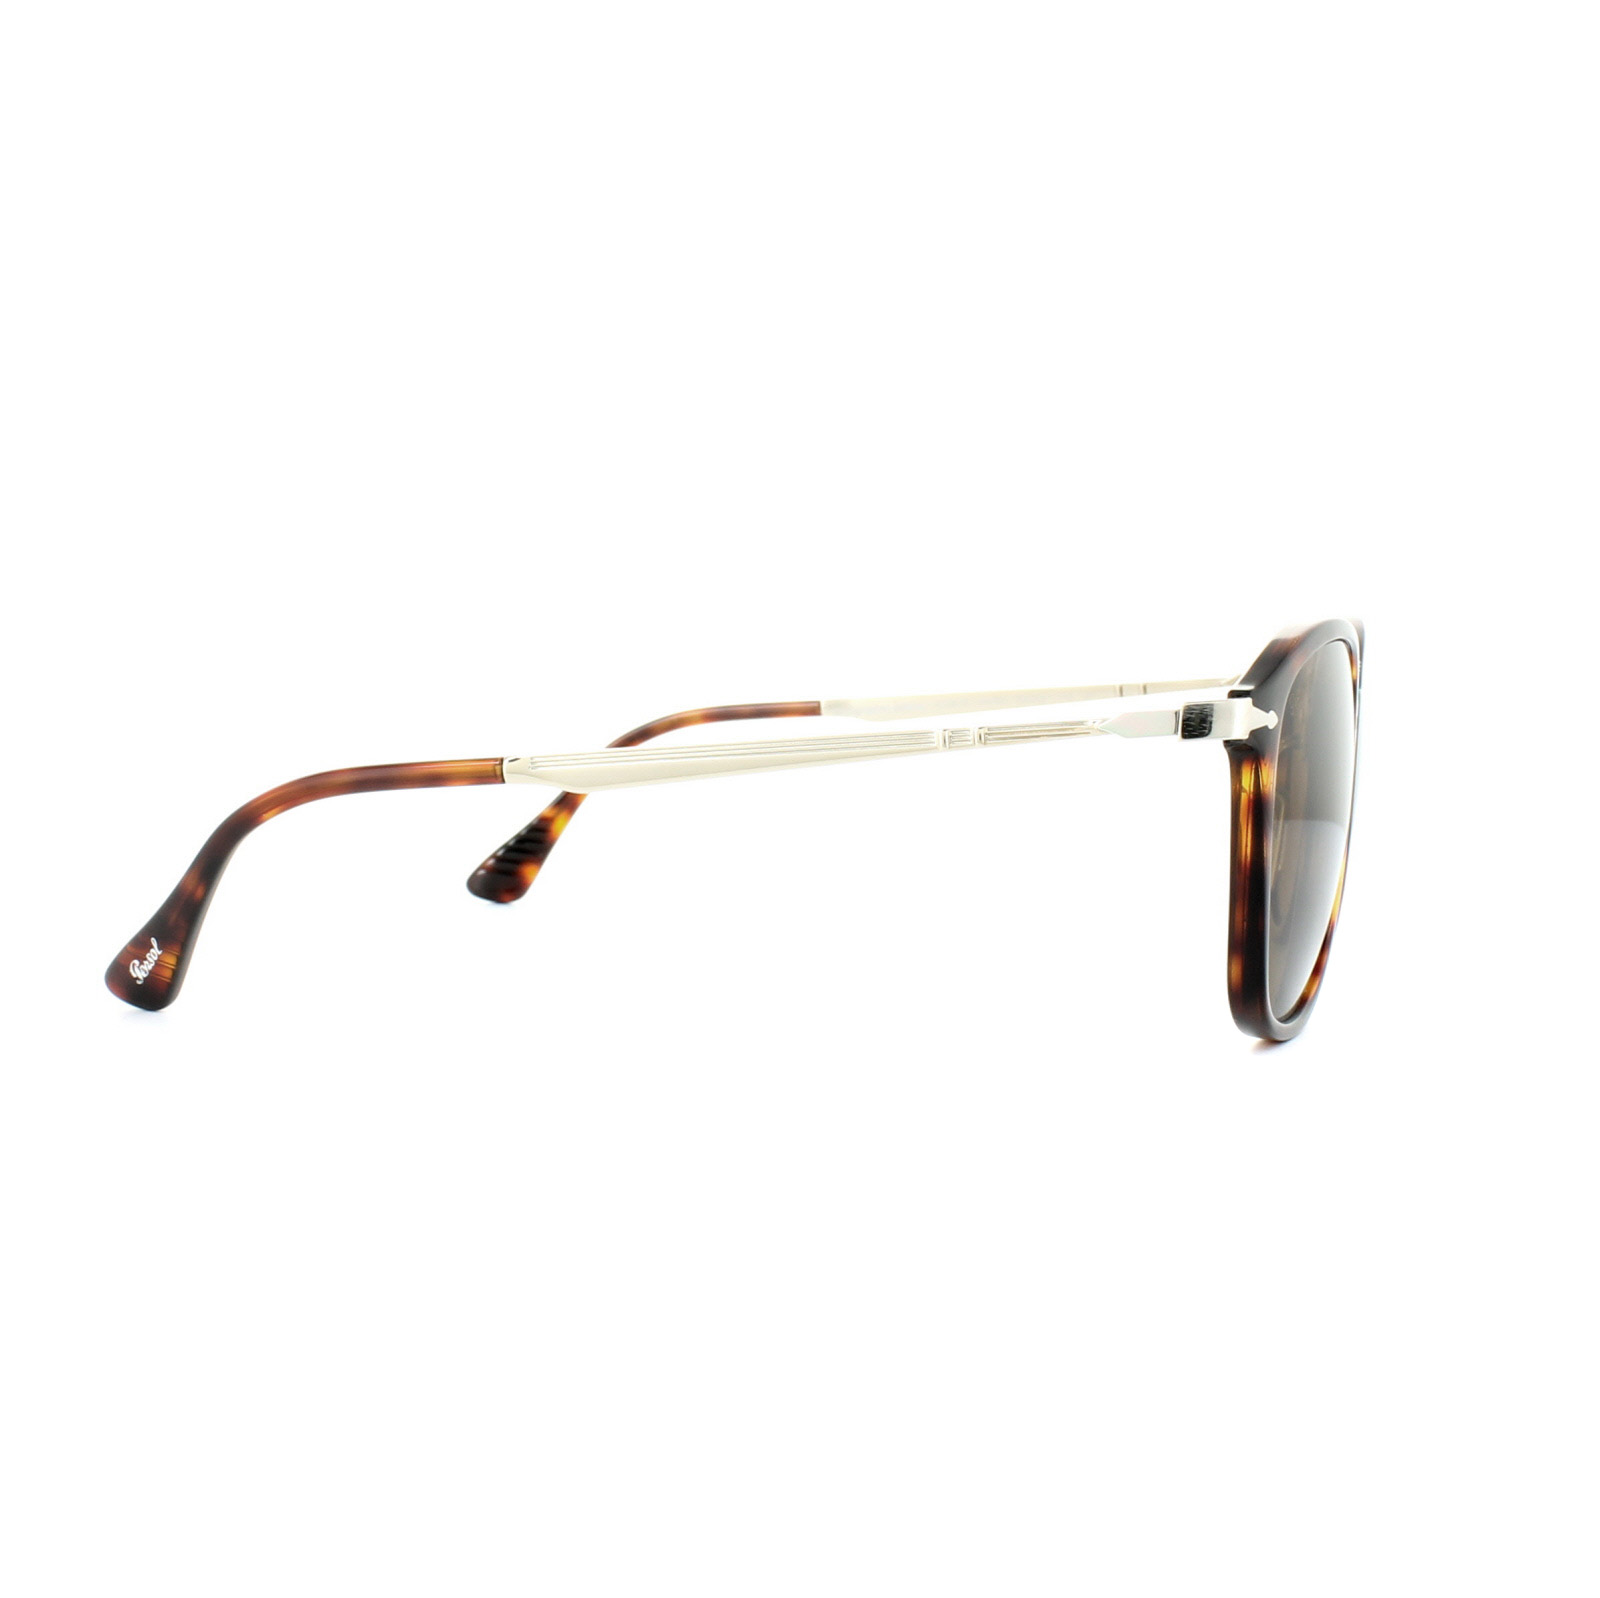 7abeef62894 Persol Sunglasses 3165 24 57 Havana Brown Polarized 8053672664973